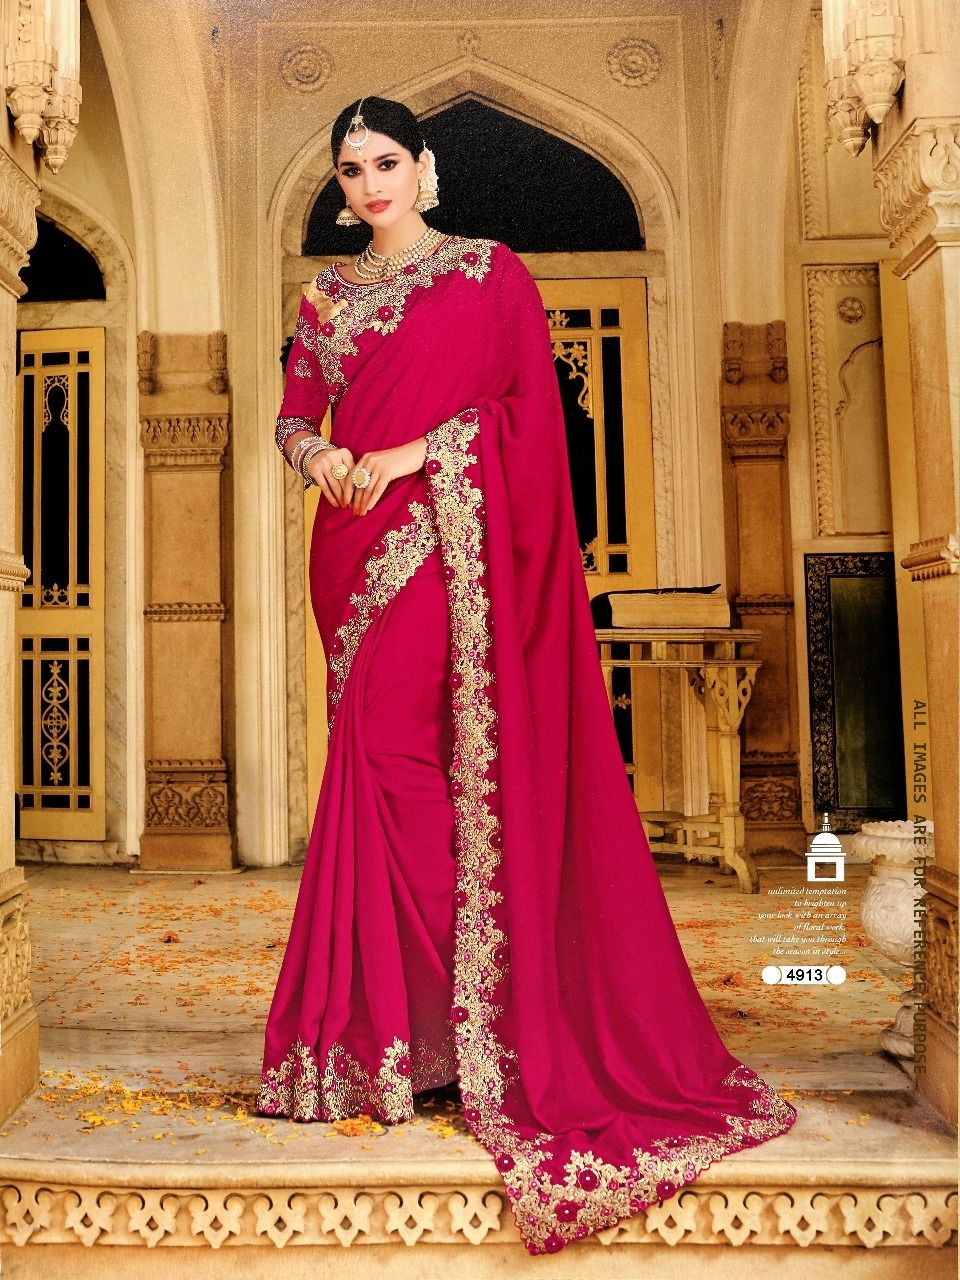 67232f61bde55e Fabric Silk Color Magenta, Pink Work Laser Cut Embroidery,  Resham-Embroidery, Stone